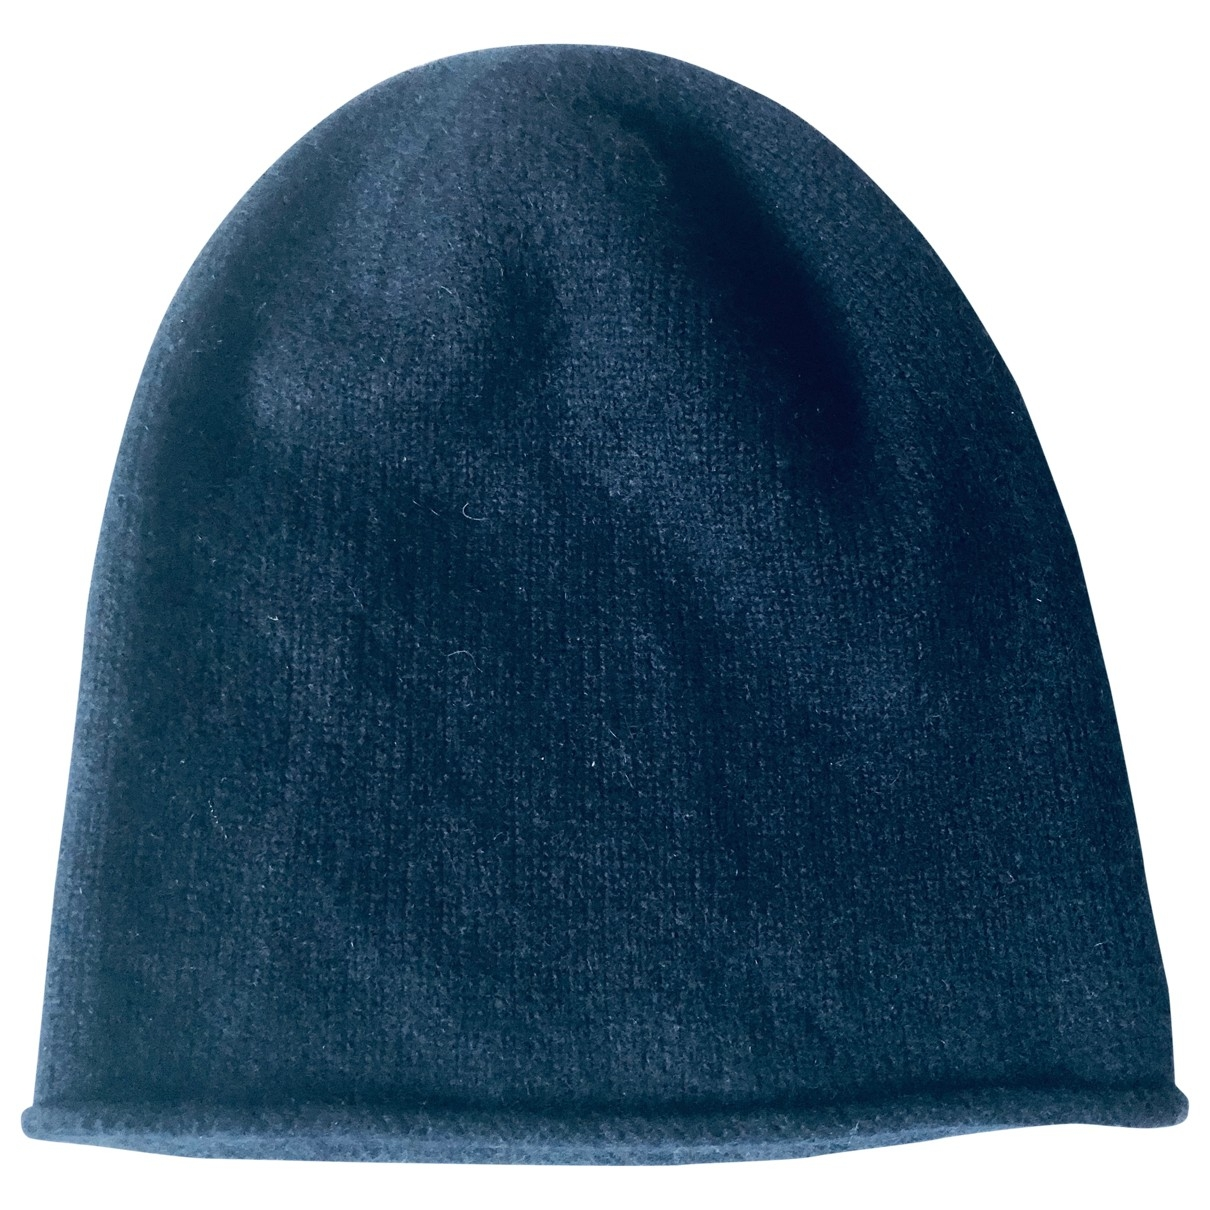 Cos \N Navy Cashmere hat for Women M International